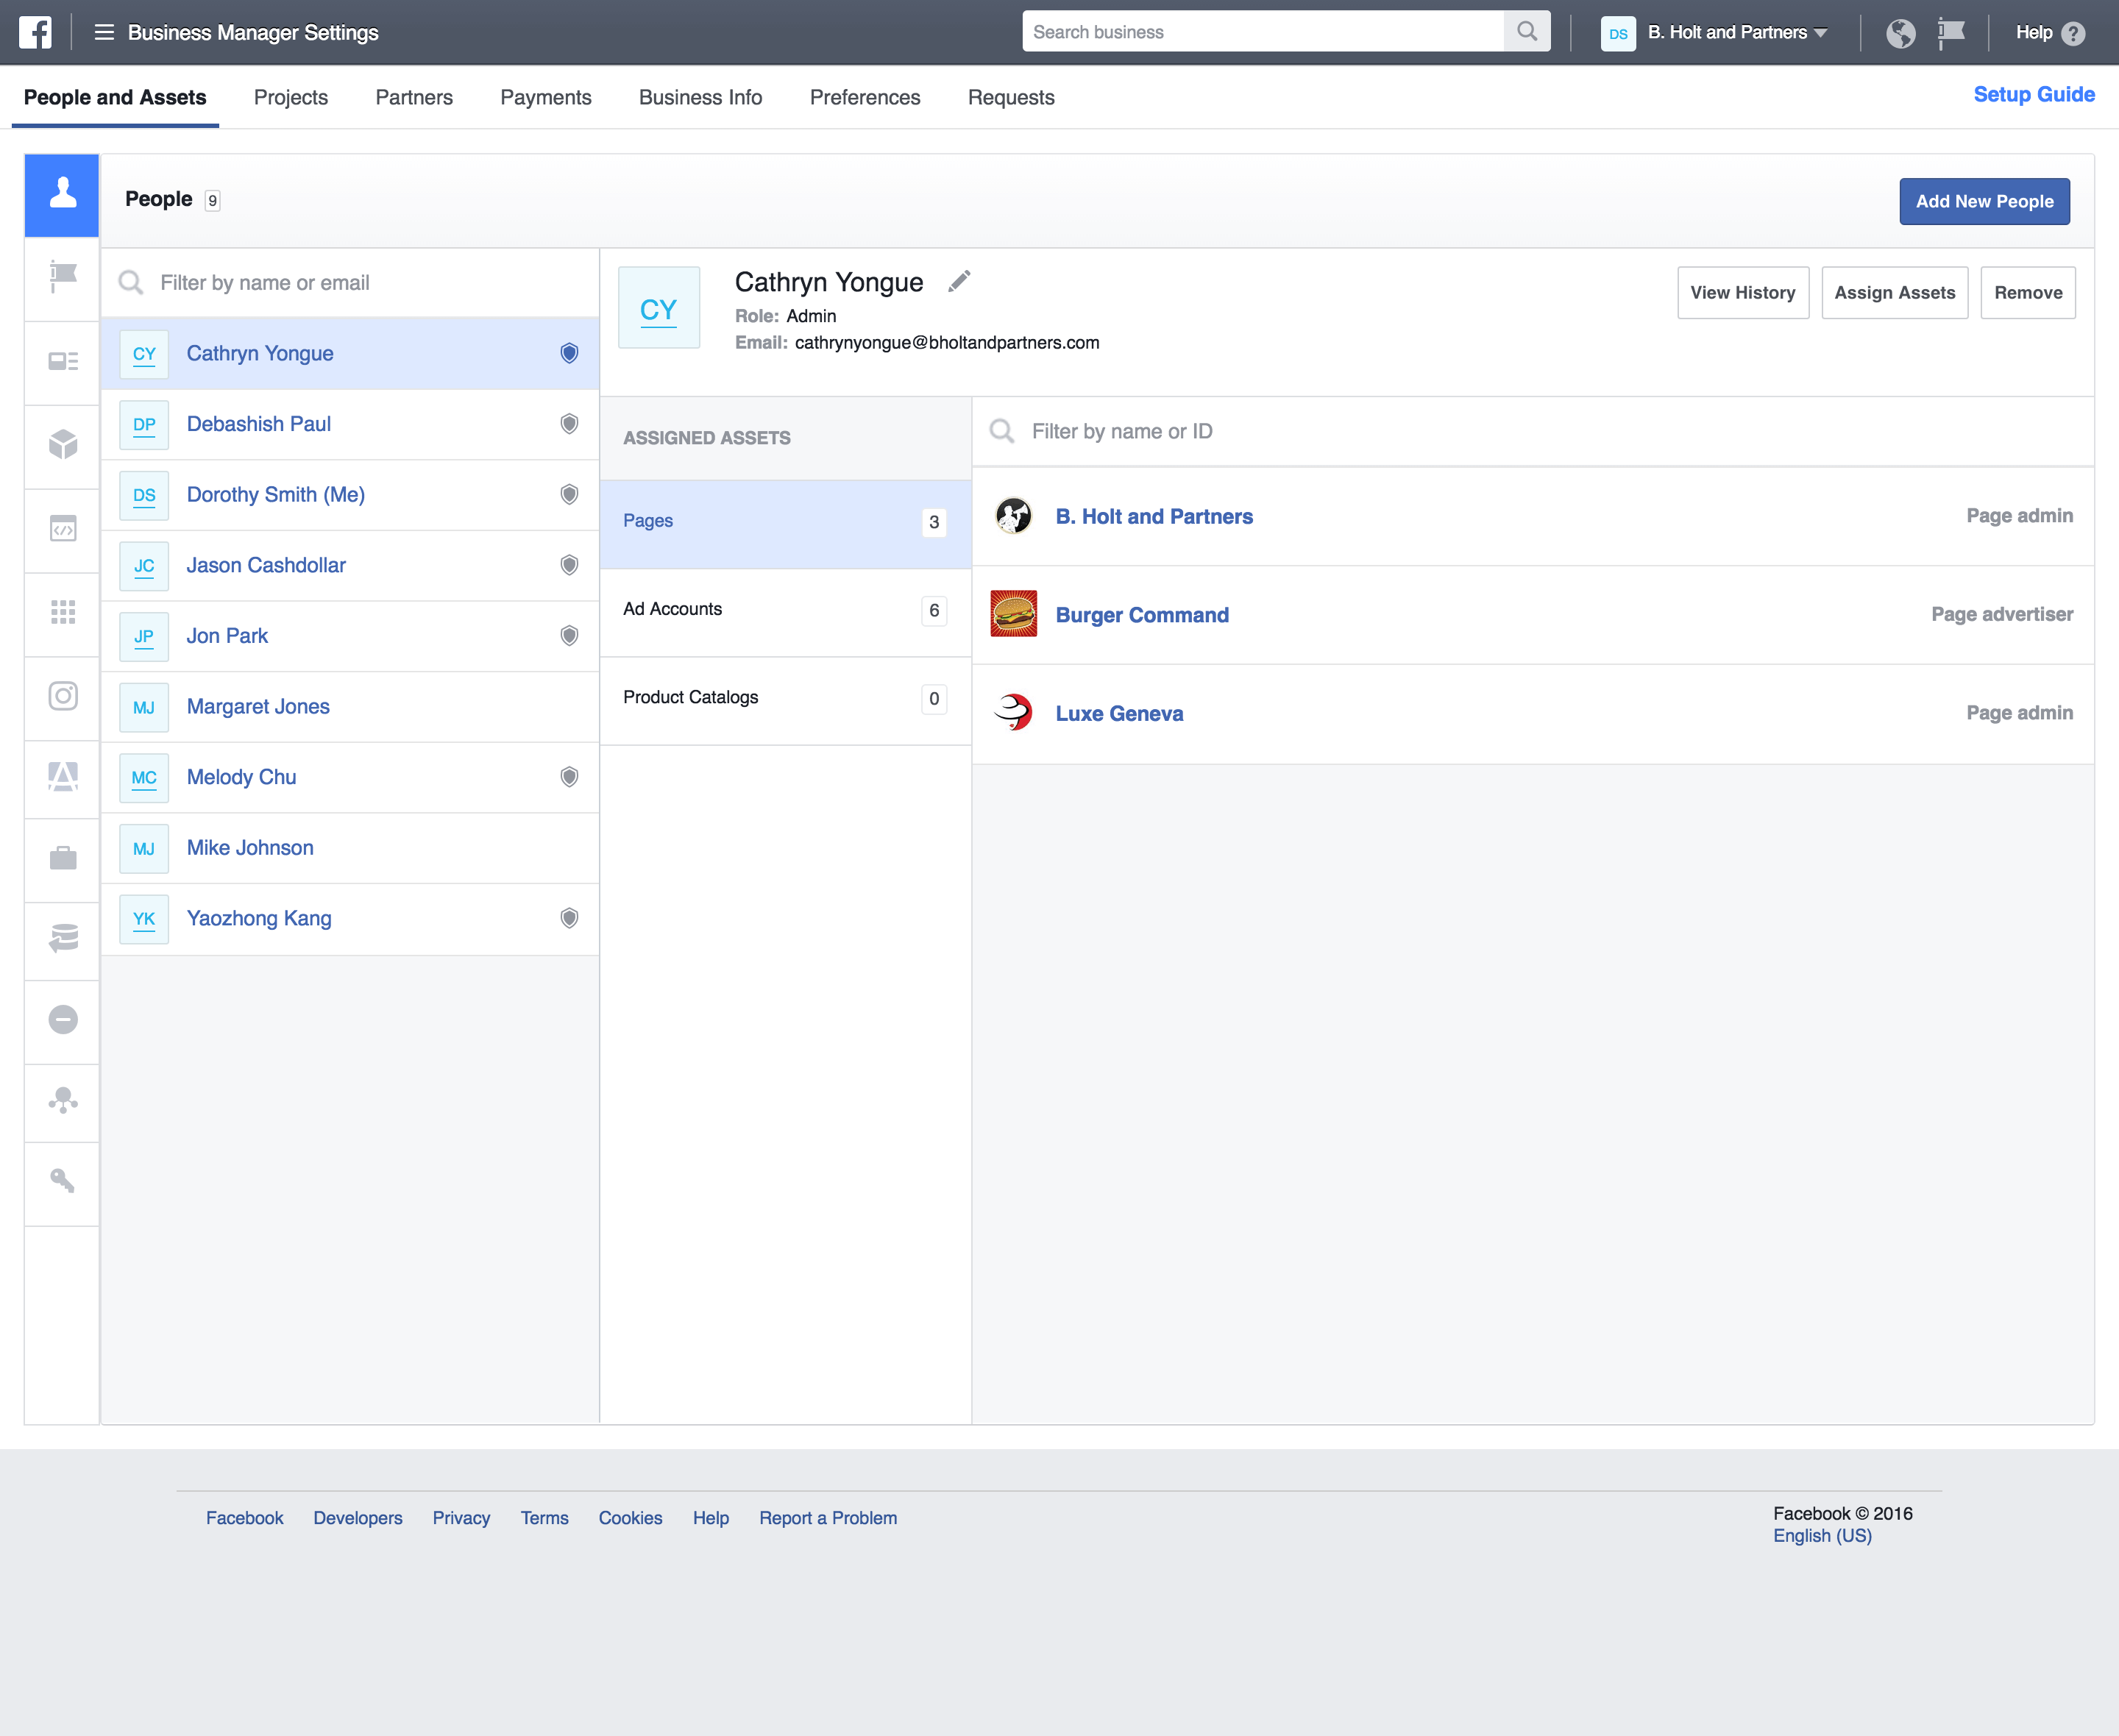 facebook-business-manager-add-pages-people